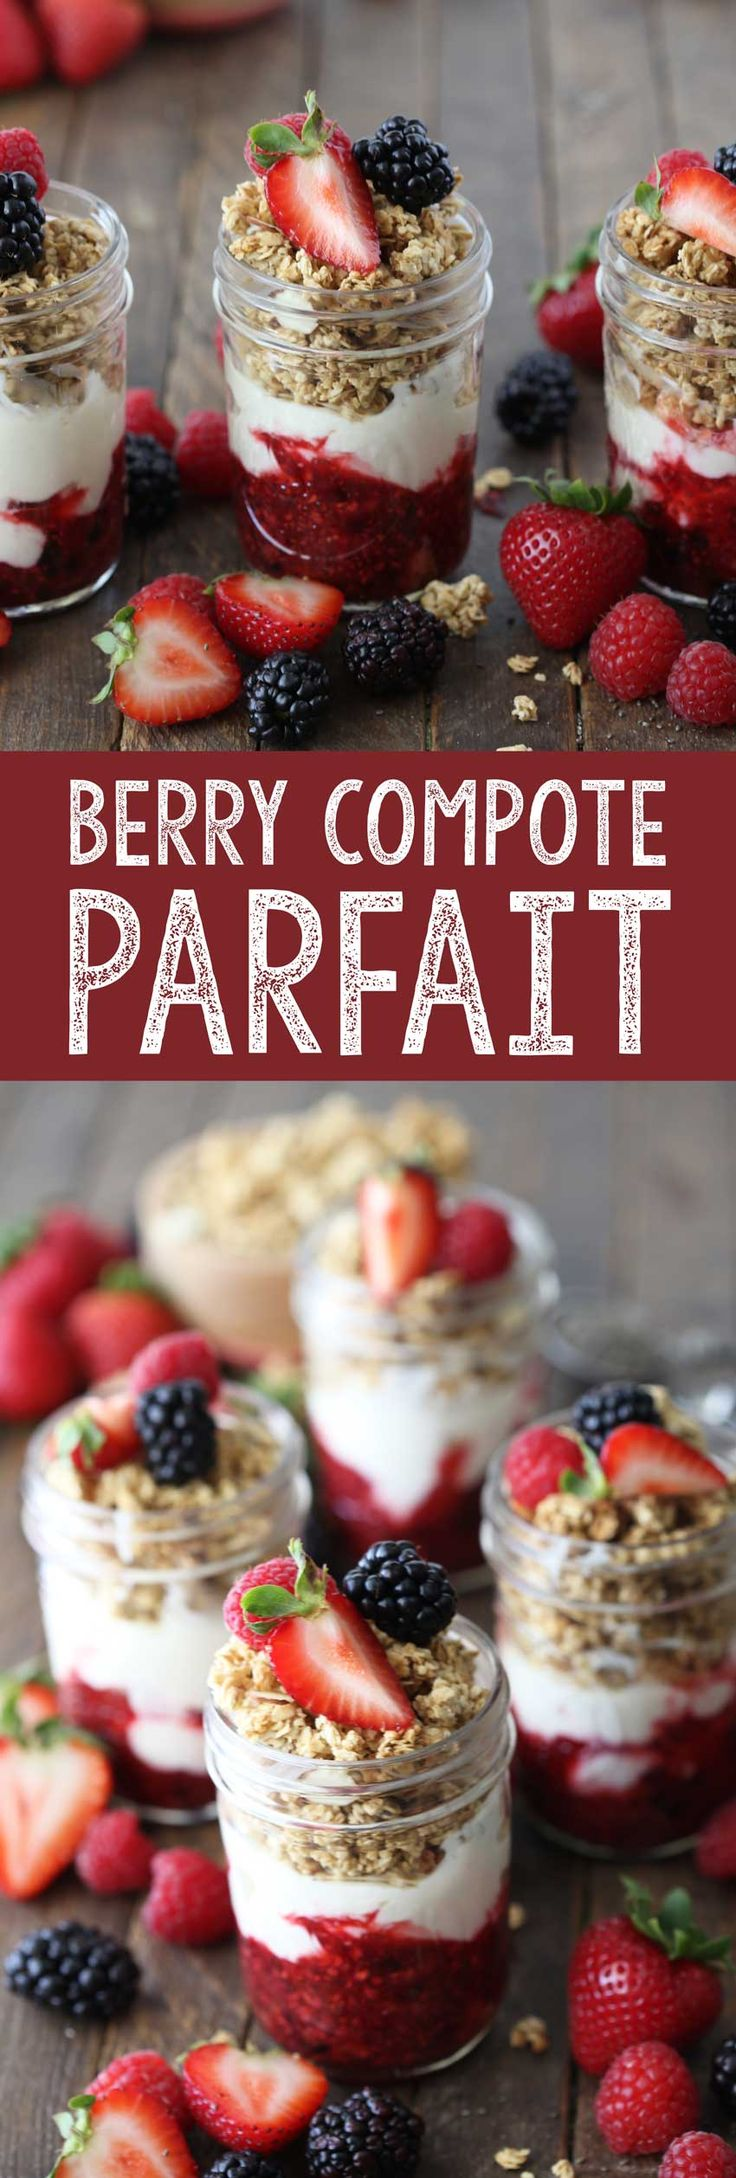 Berry compote, Parfait and Berries on Pinterest